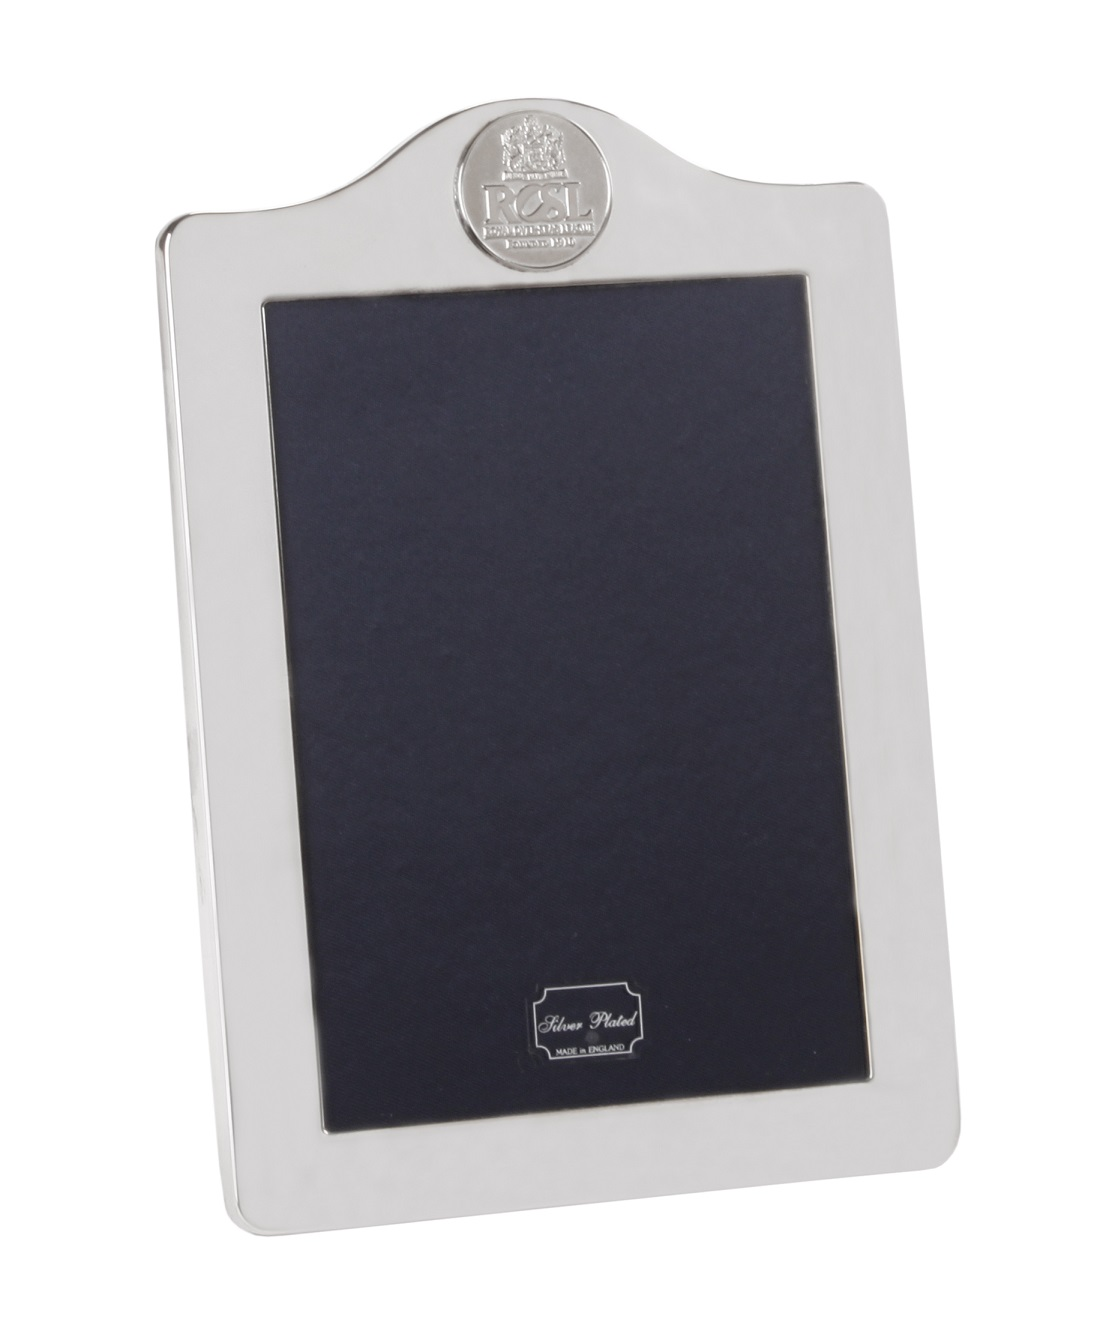 Small silver-plated photo frame